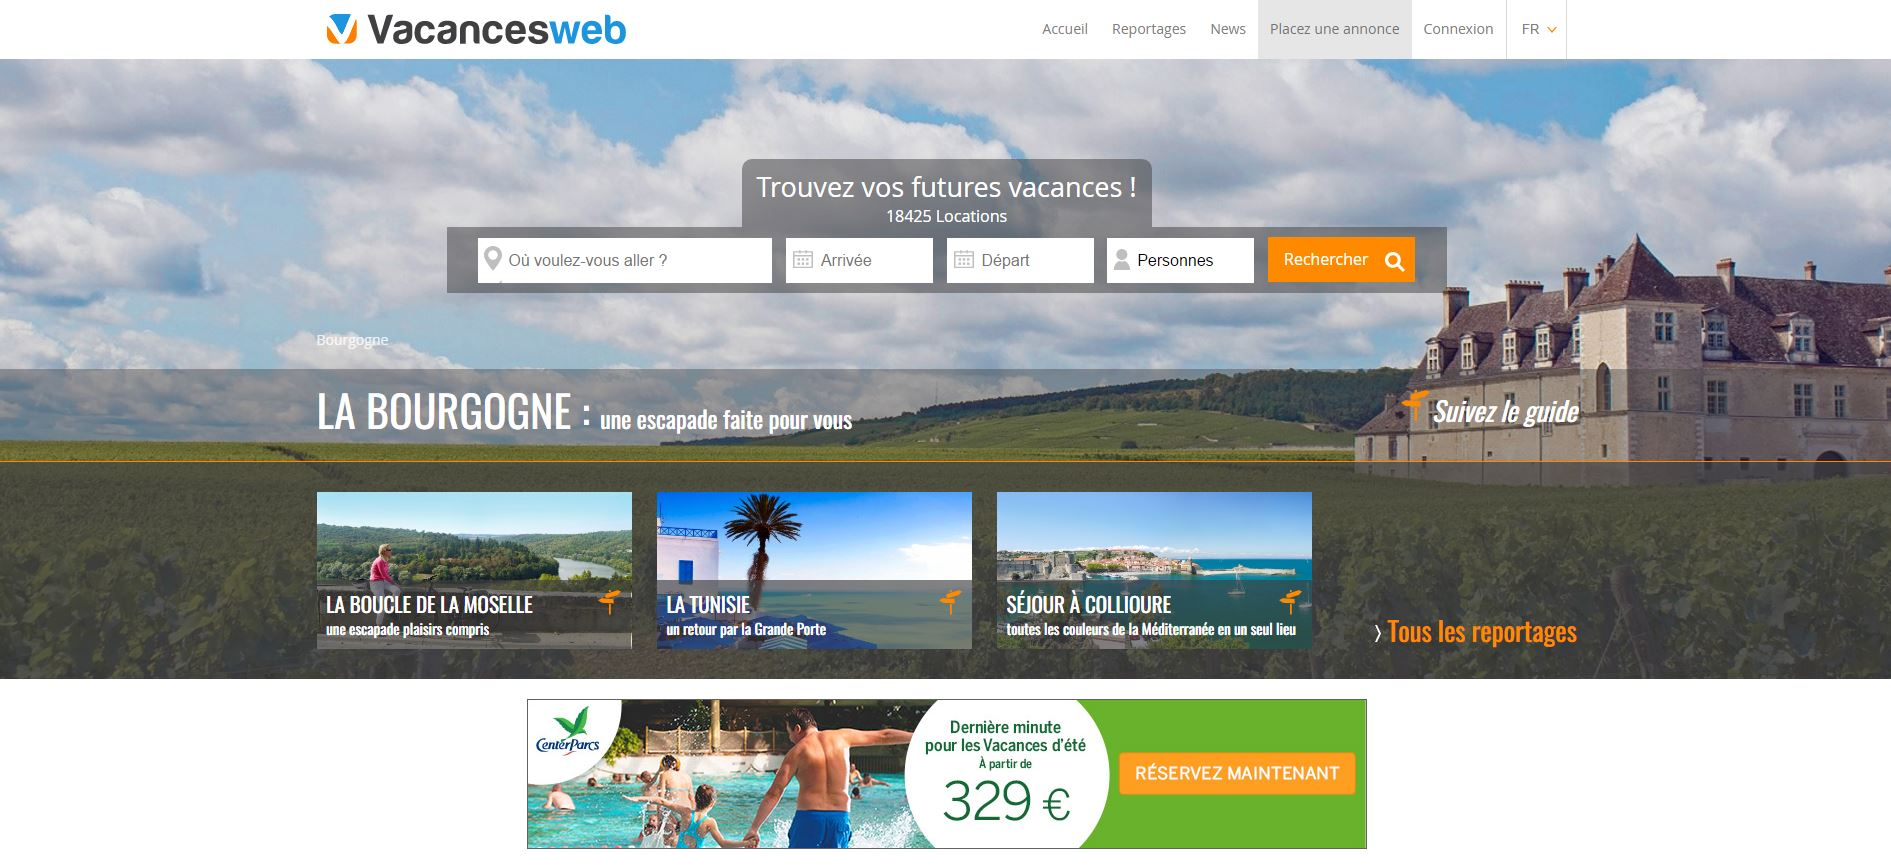 Vacancesweb web (French)